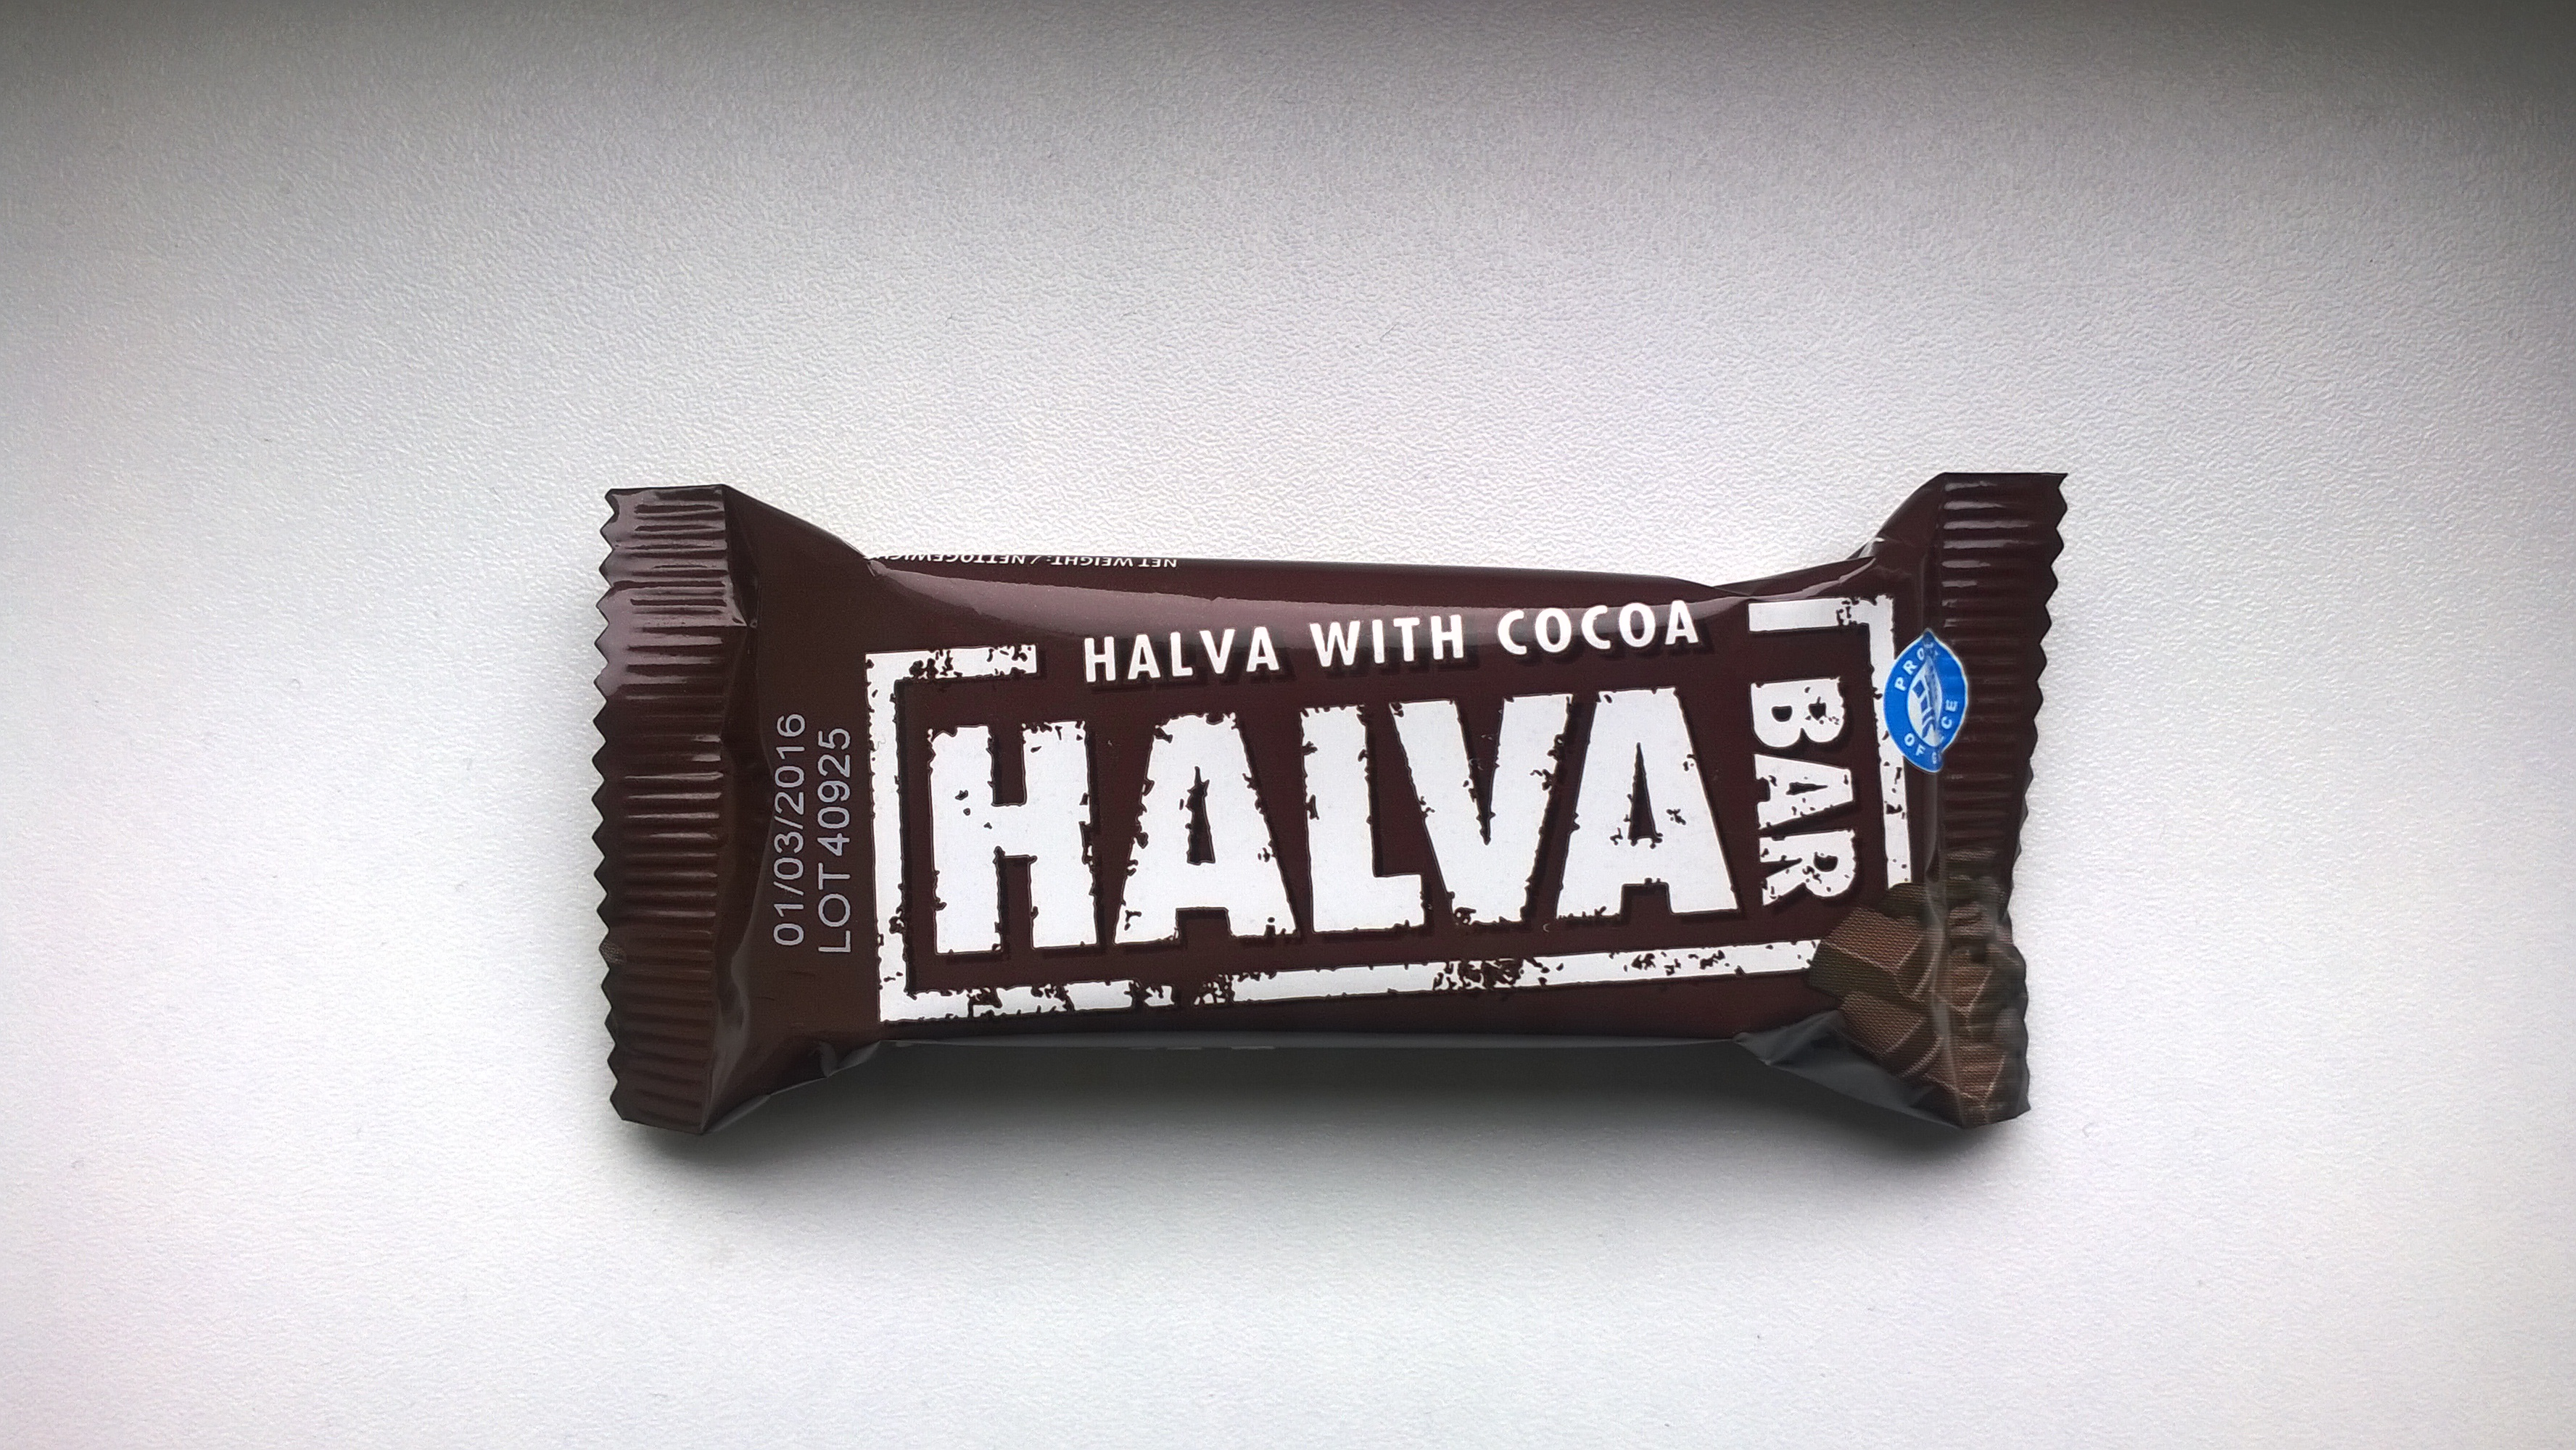 Packaging of Halva with Cocoa by Haitoglou Bros